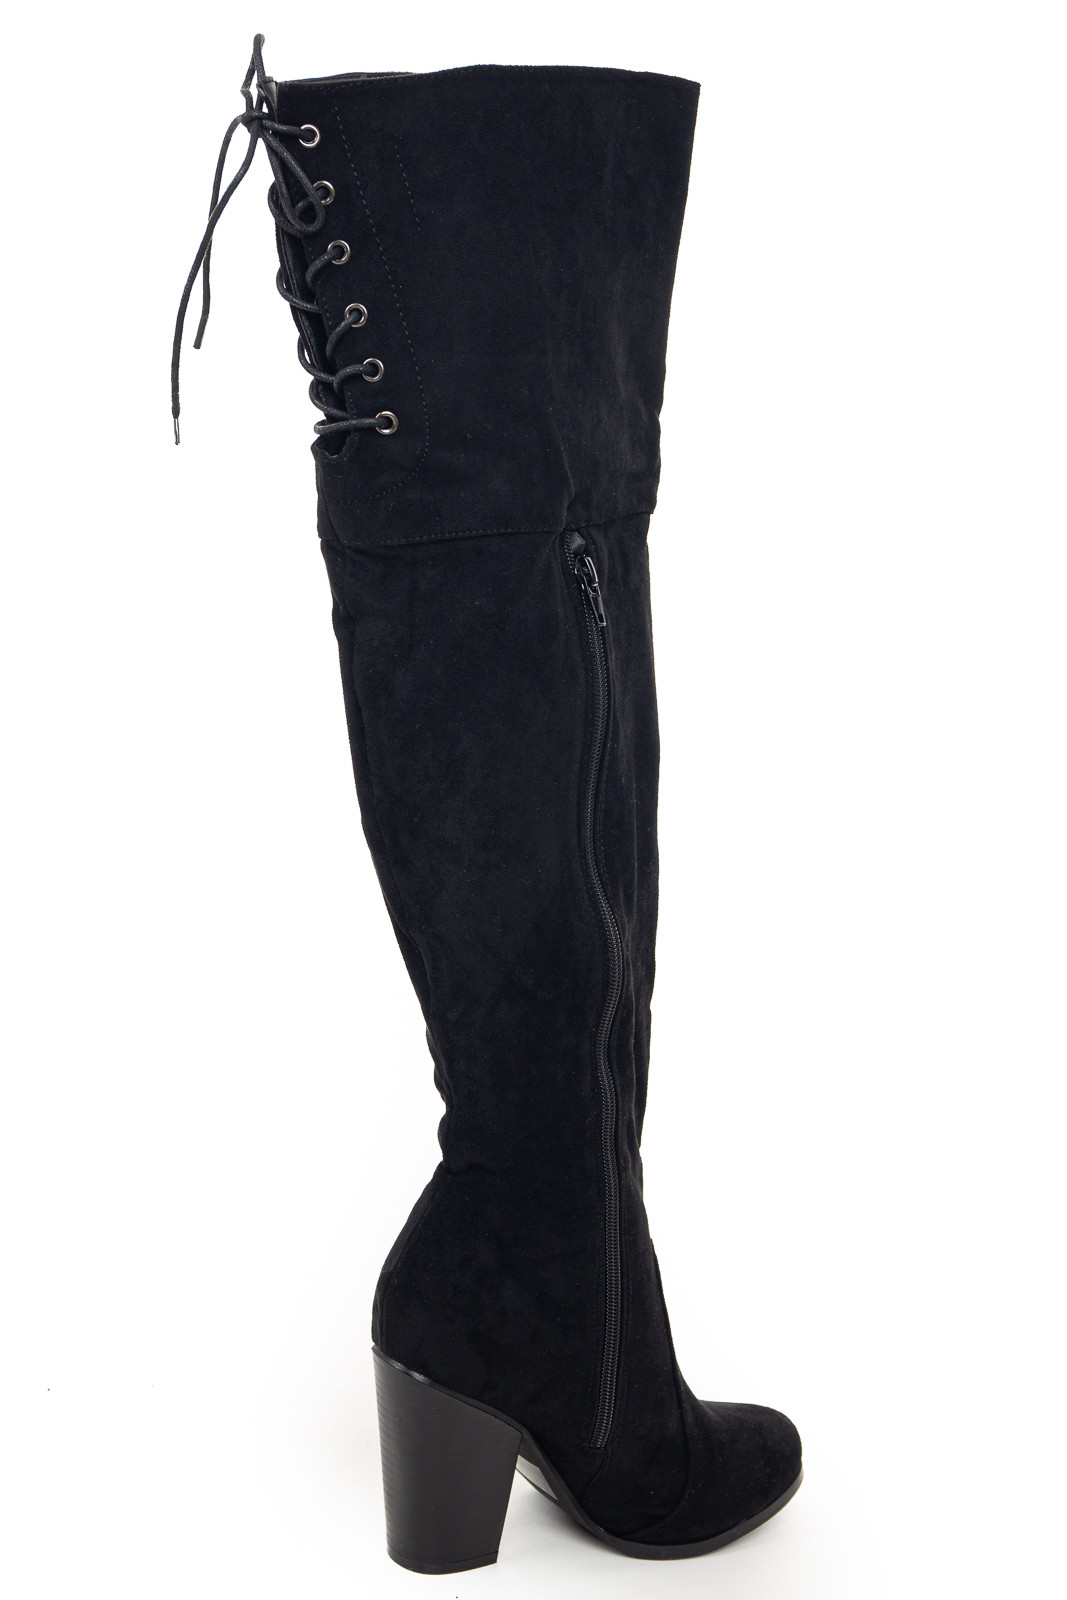 Black Over the Knee High Boots with Lace Up Back Detail